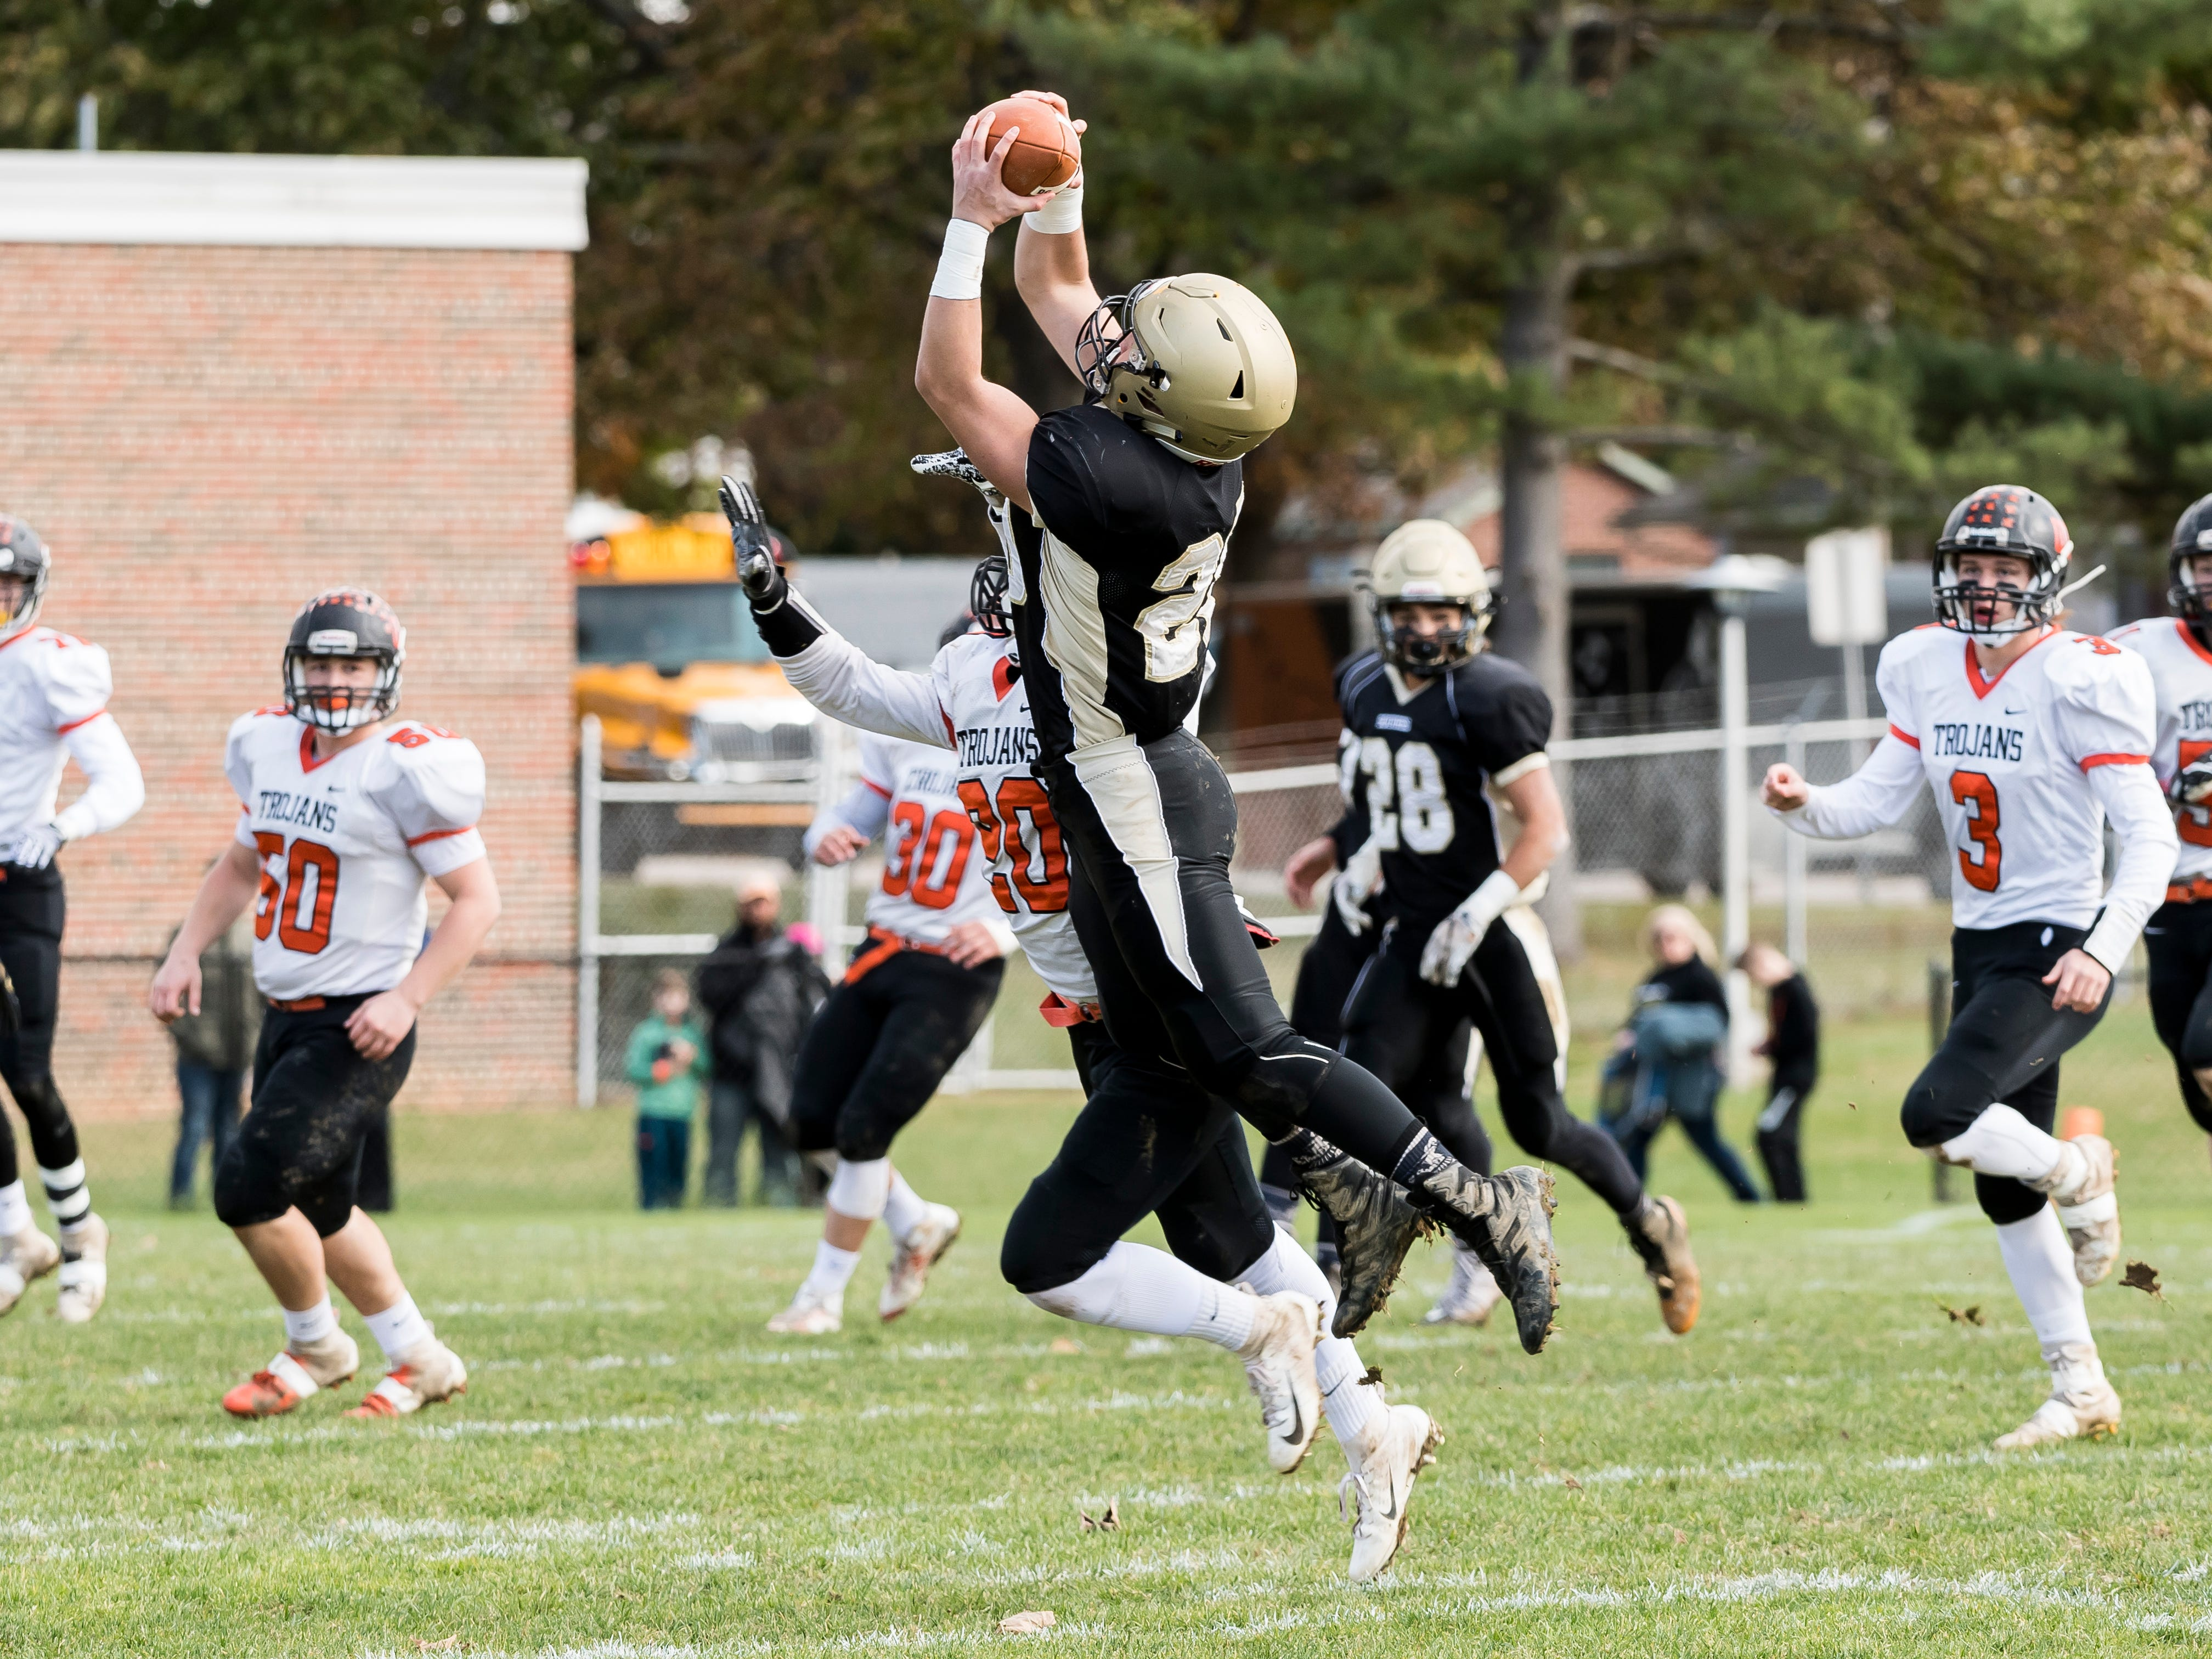 Delone Catholic's Tyler Monto makes a catch in the middle of the field during a District III Class 2A semifinal game against Upper Dauphin on Saturday, November 3, 2018. The Squires won 48-23.